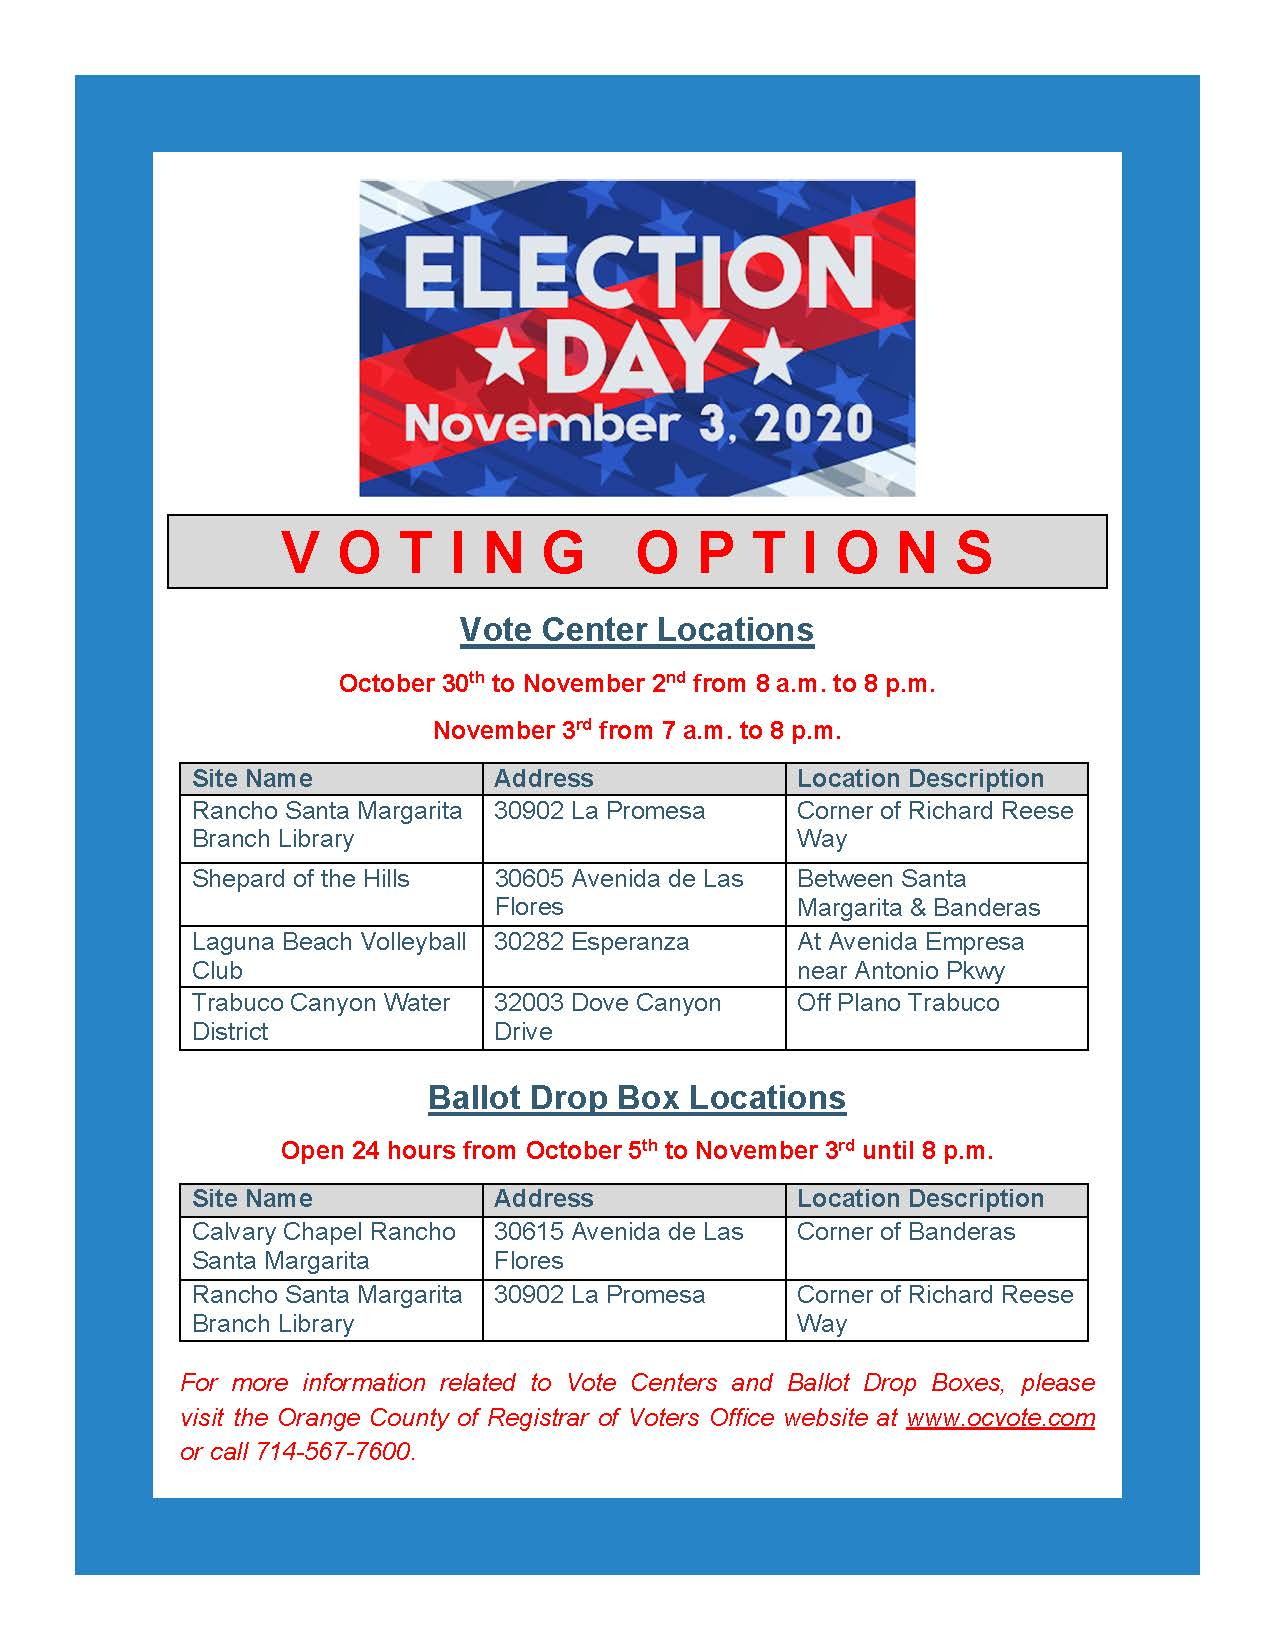 Voting Options Flyer 2020